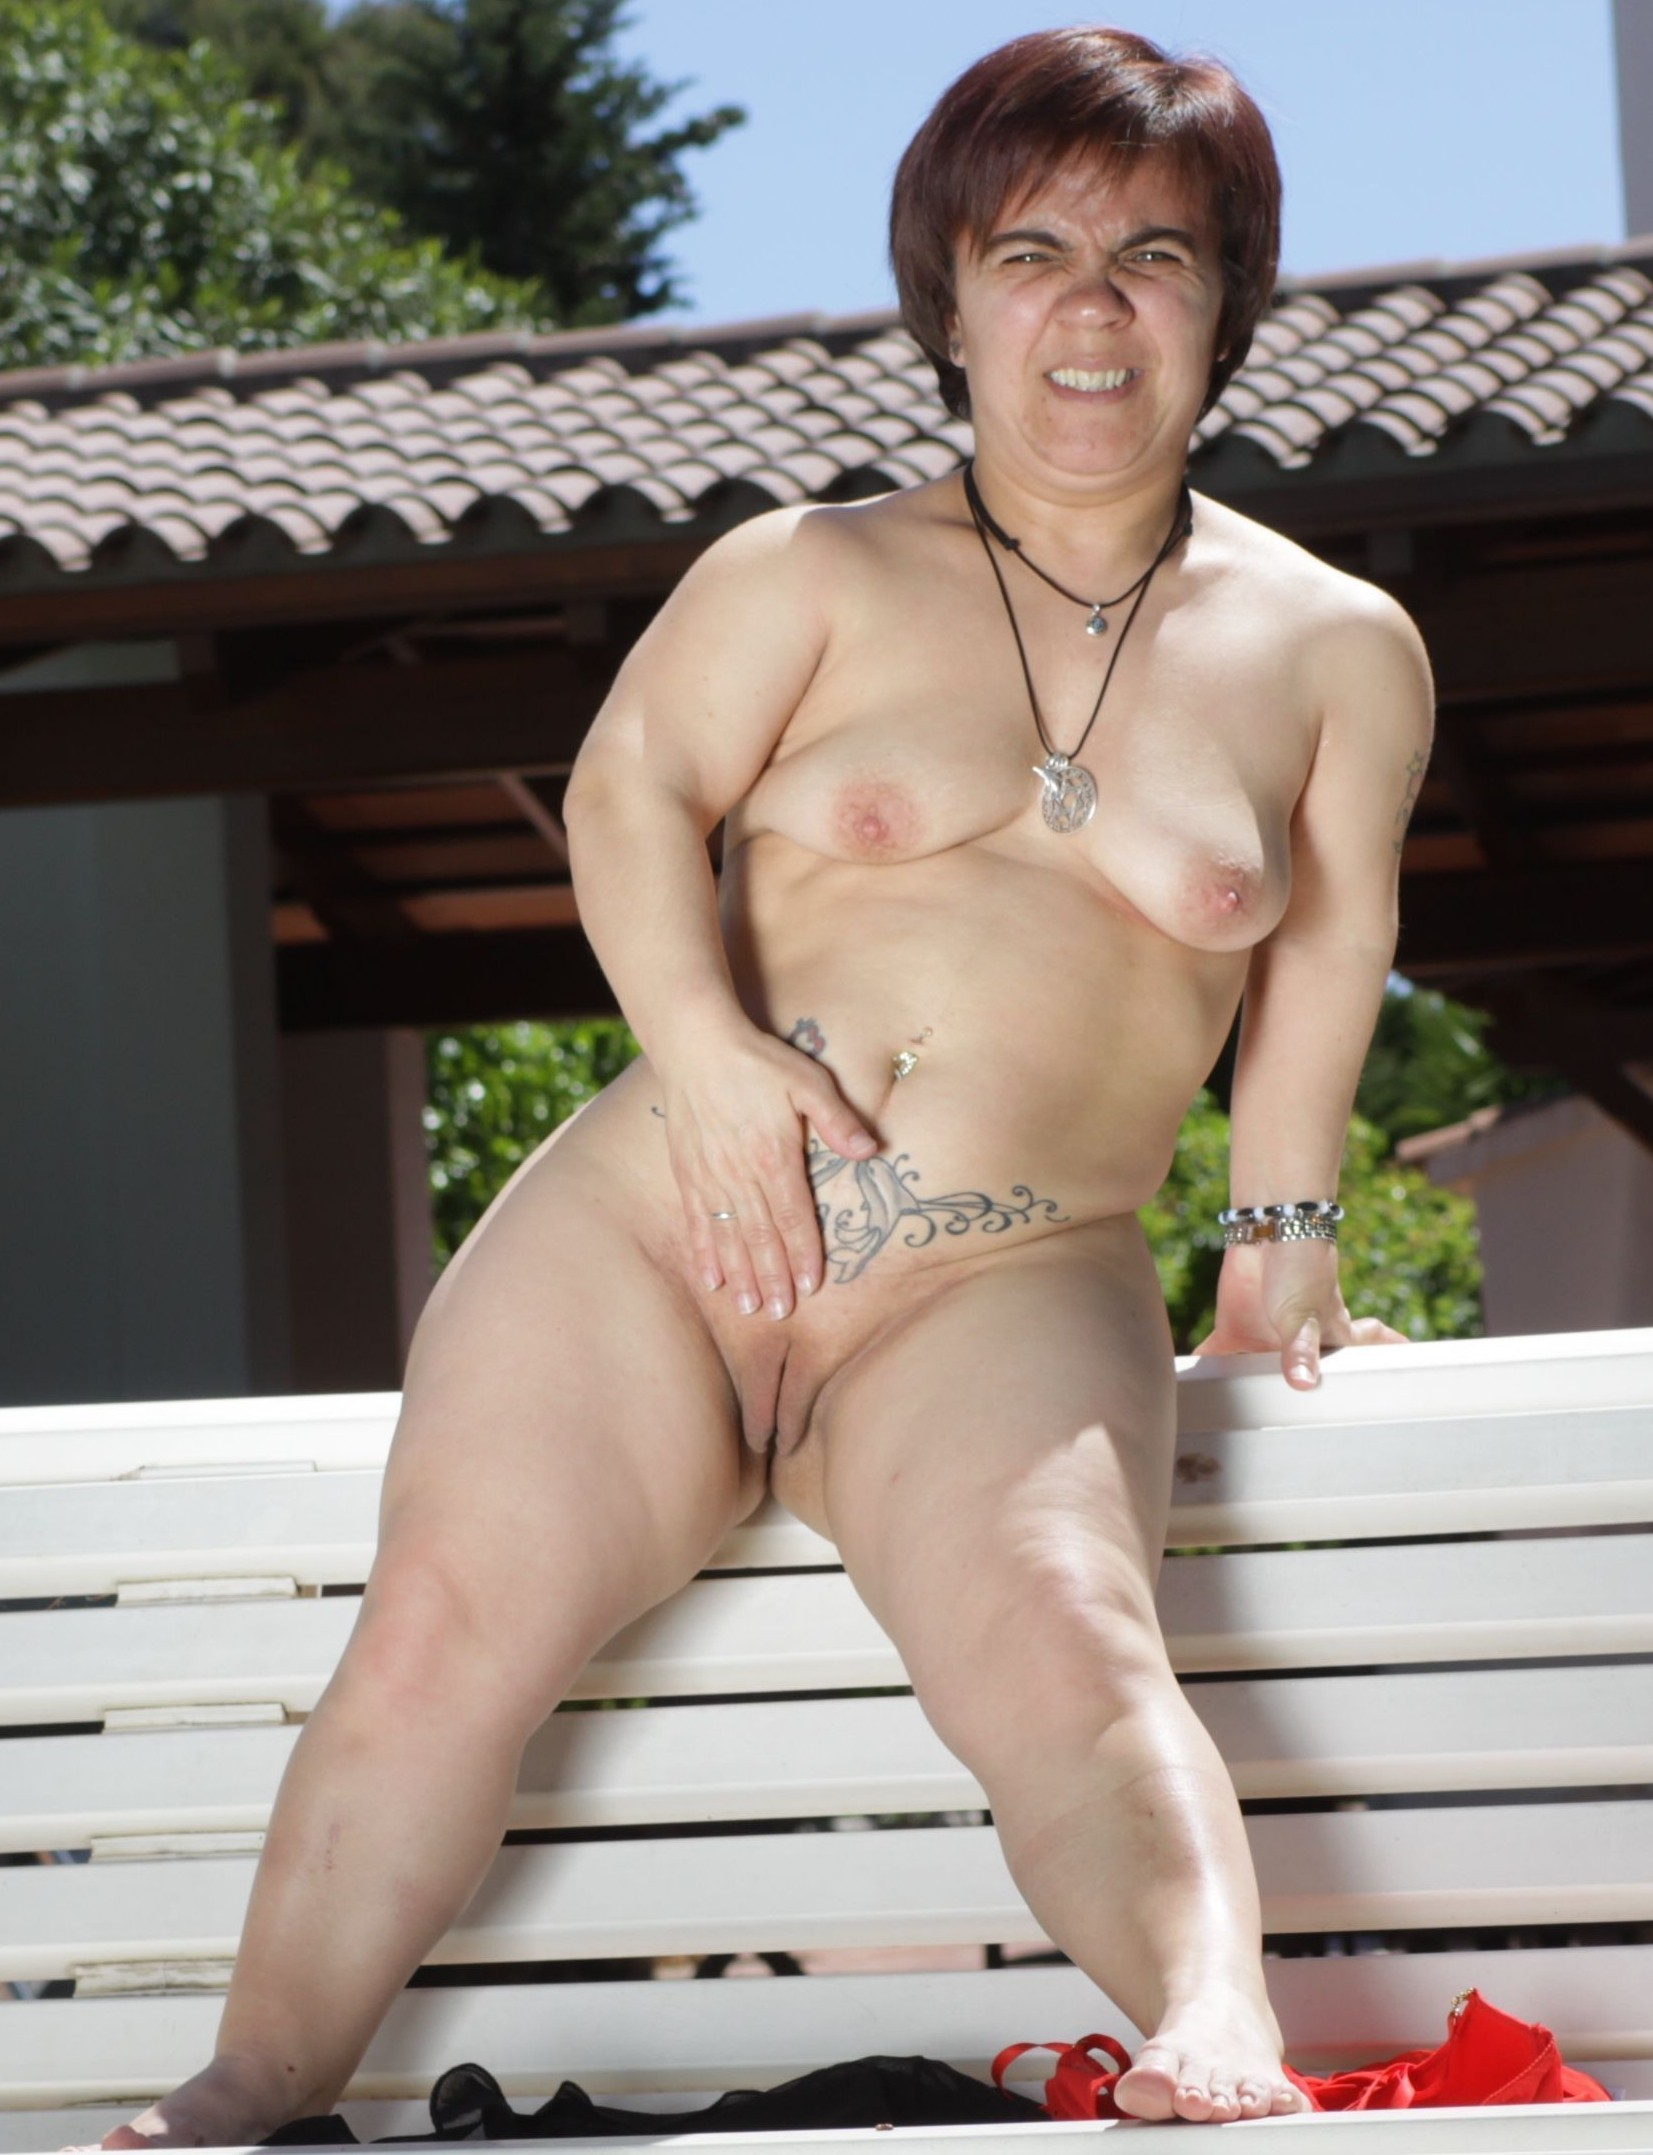 have thought jiggle balls in my wet shaved pussy make me squirt agree, the